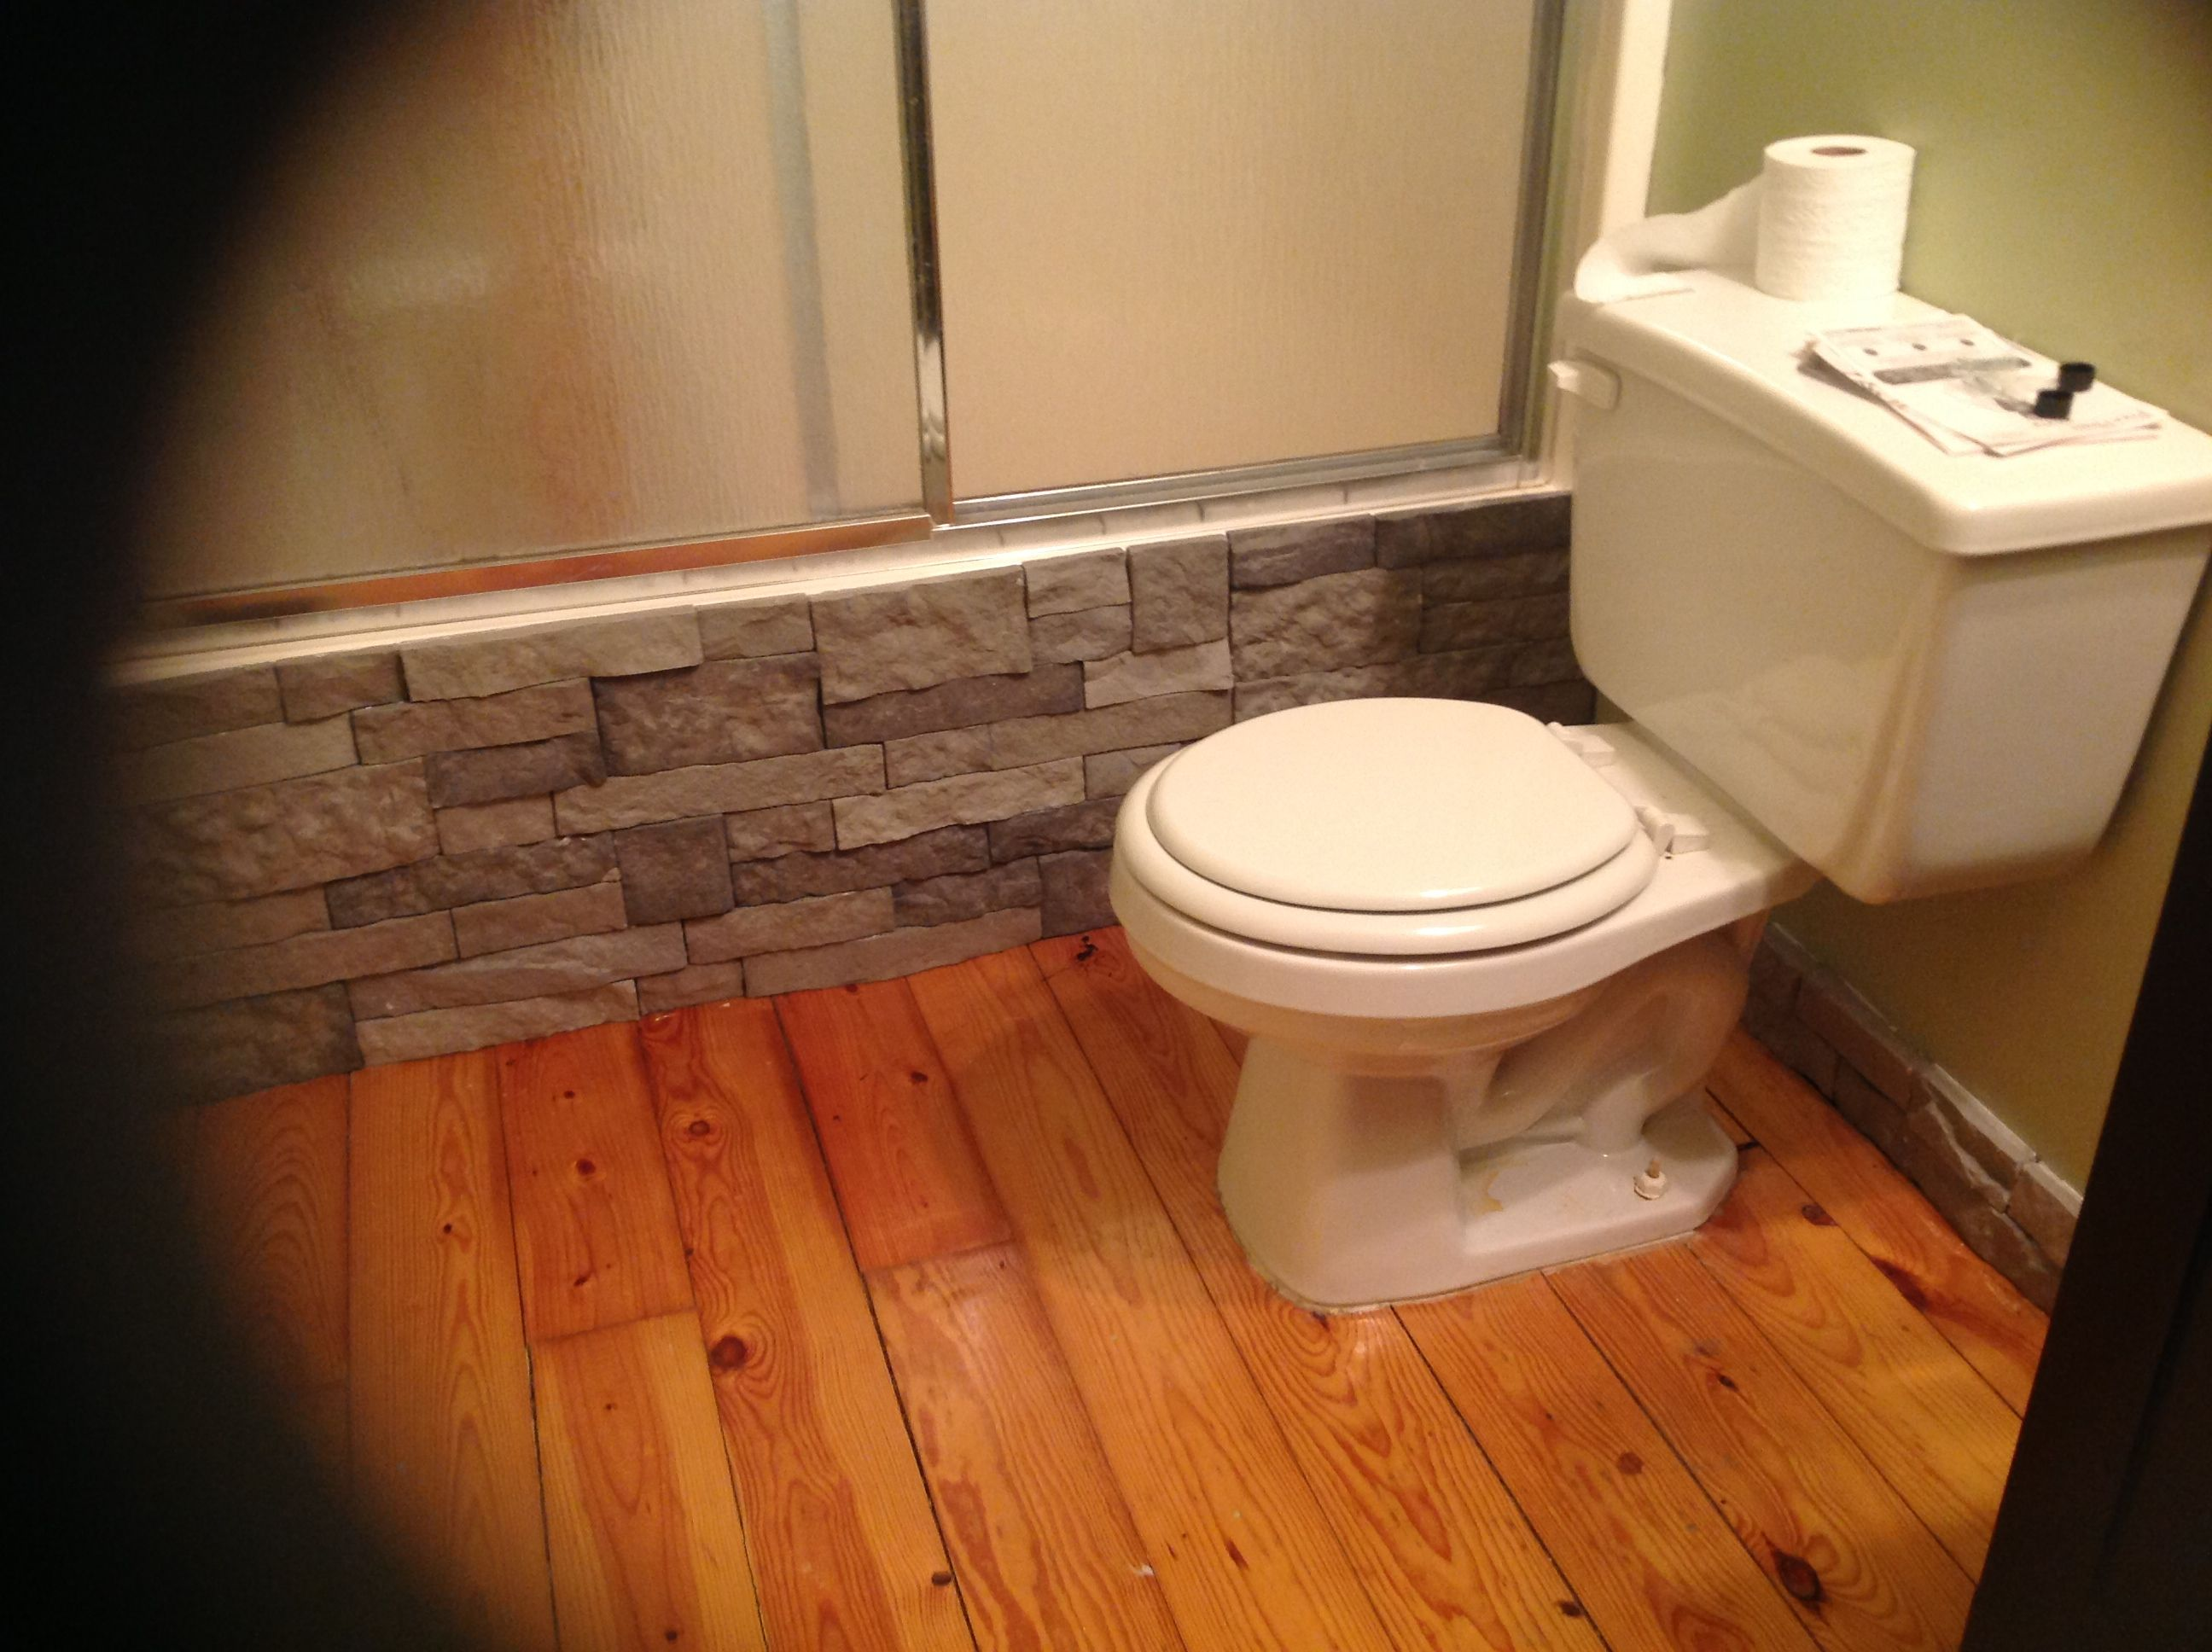 Guest Bathroom Ideas With Pleasant Atmosphere: Chad And I Are Doing Fireplace Now. It Us Addicting! Used